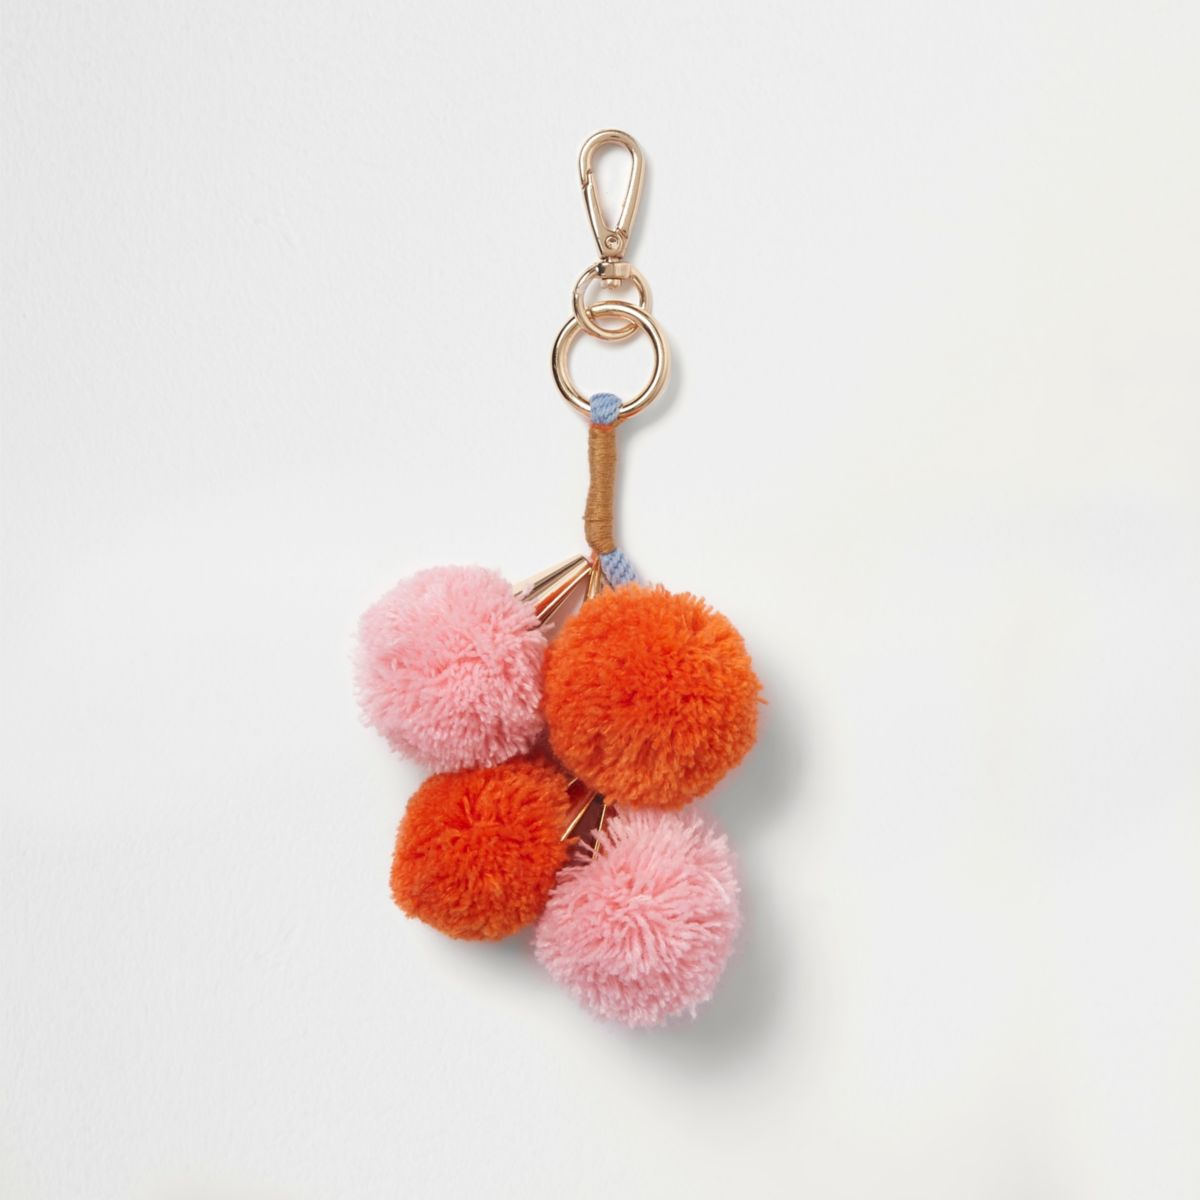 Pink and orange pom pom charm clip on keyring